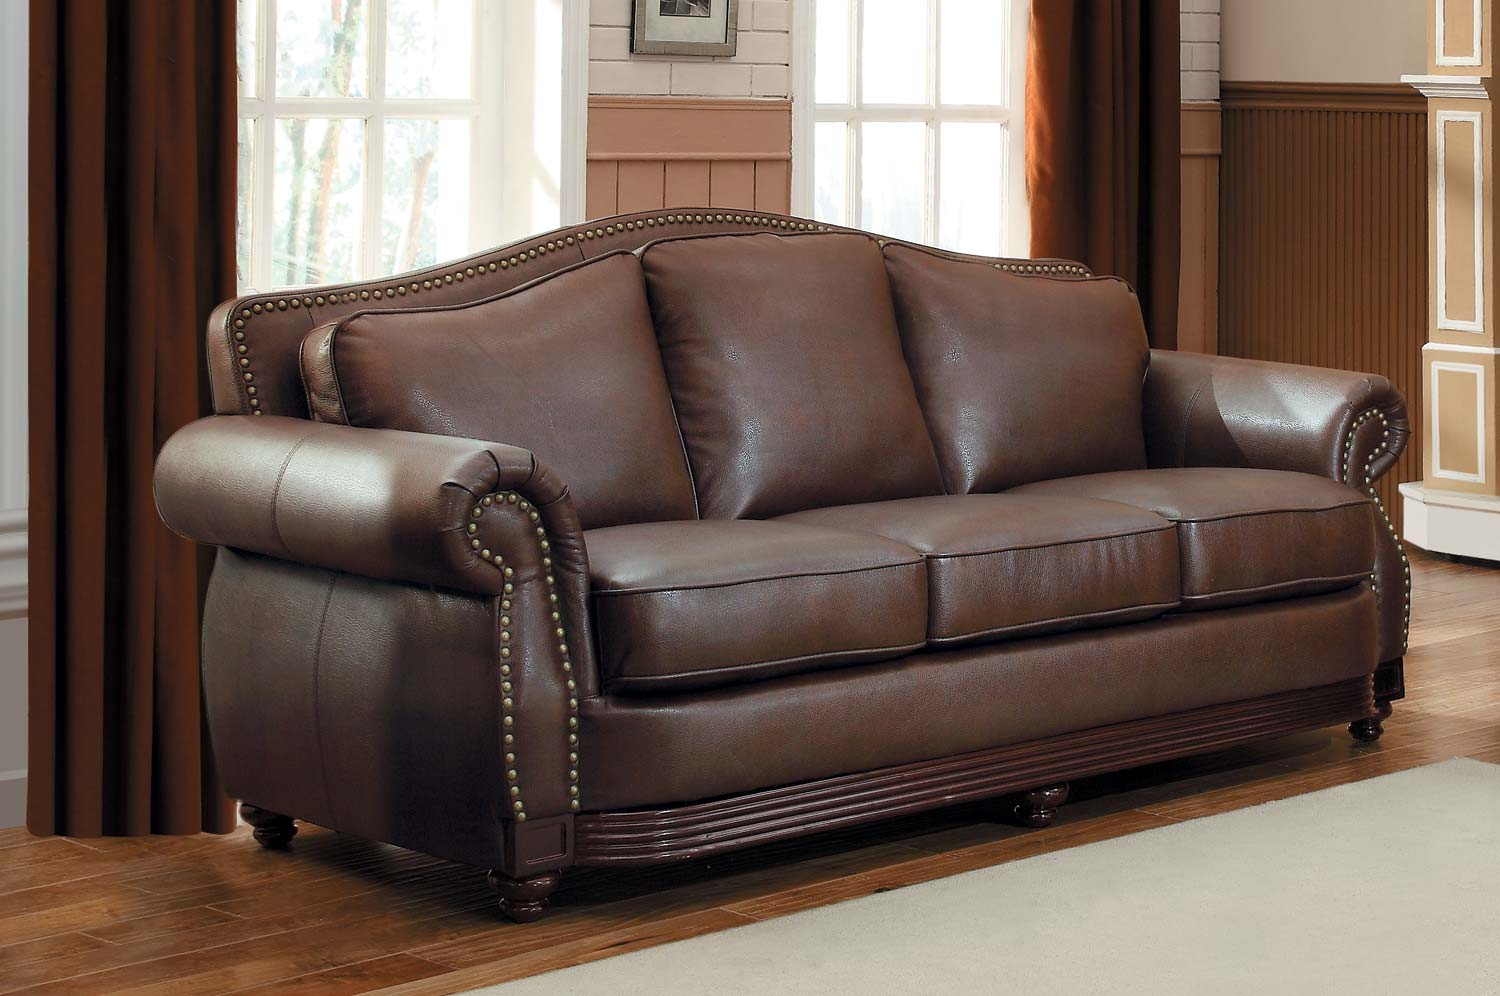 Homelegance Midwood Bonded Leather Sofa Collection - Dark ...